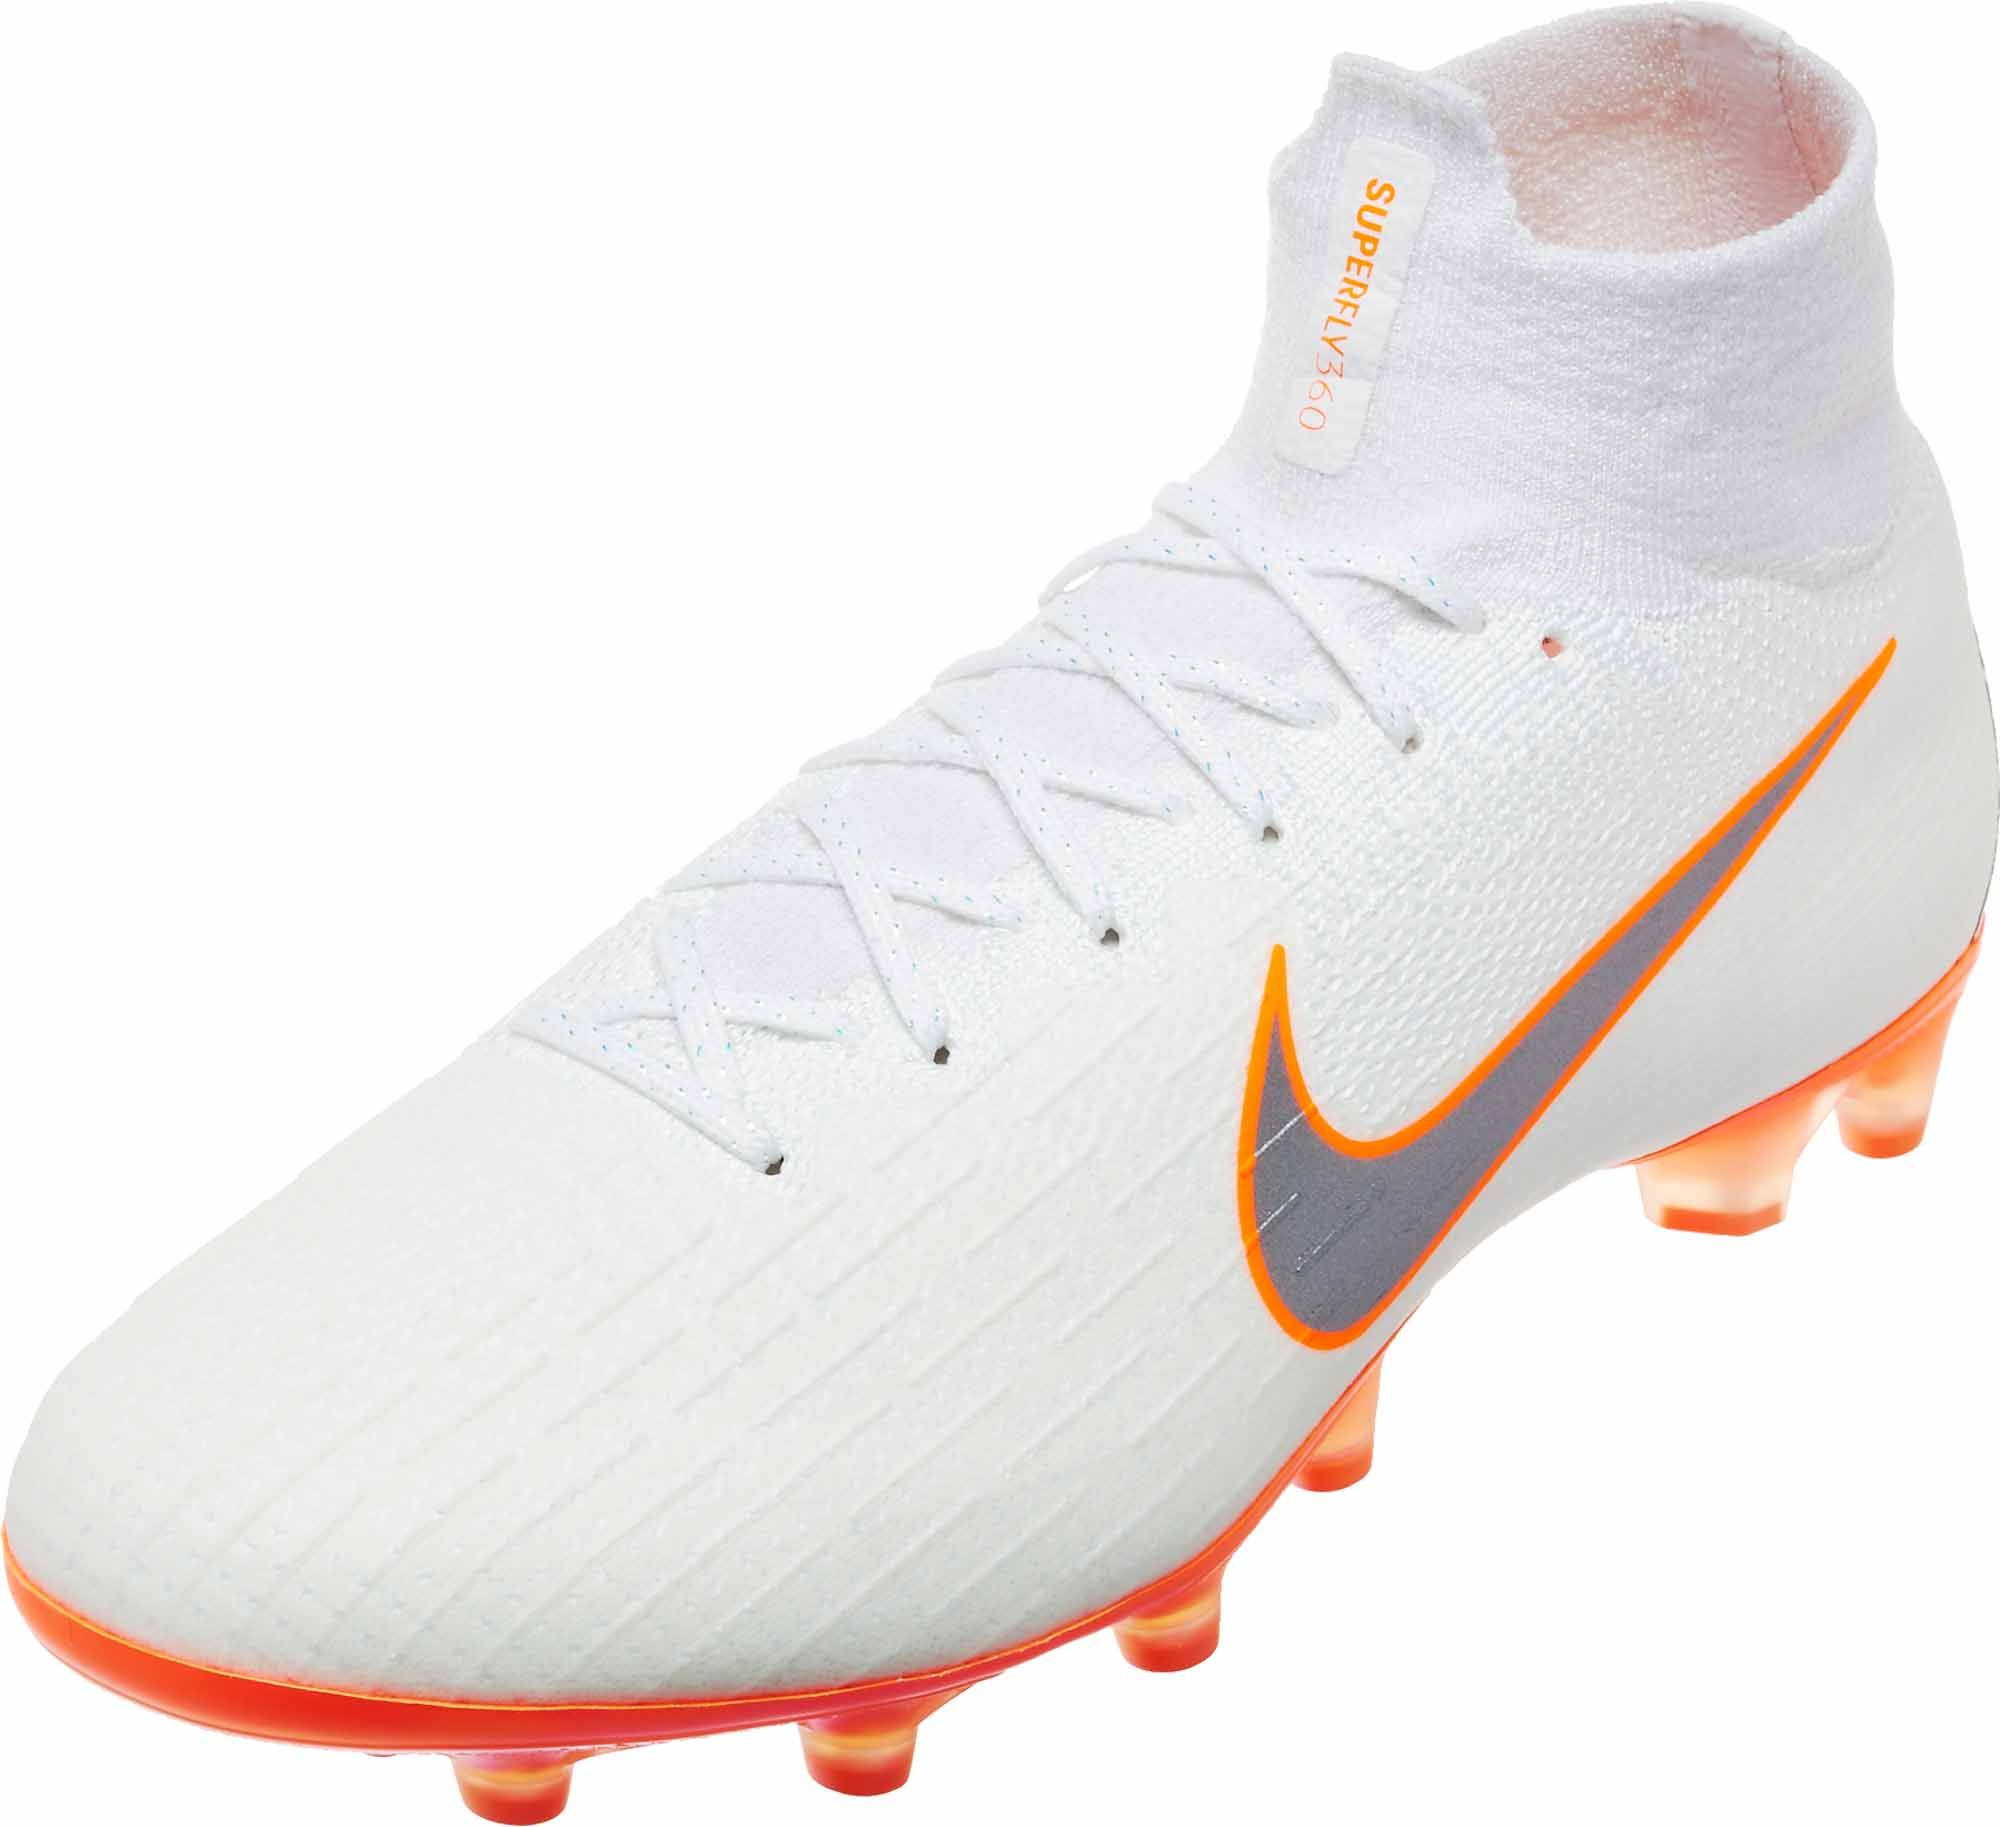 separation shoes 5ddbe 83b21 Nike Mercurial Superfly 6 Elite AG – Pro – White/Total ...